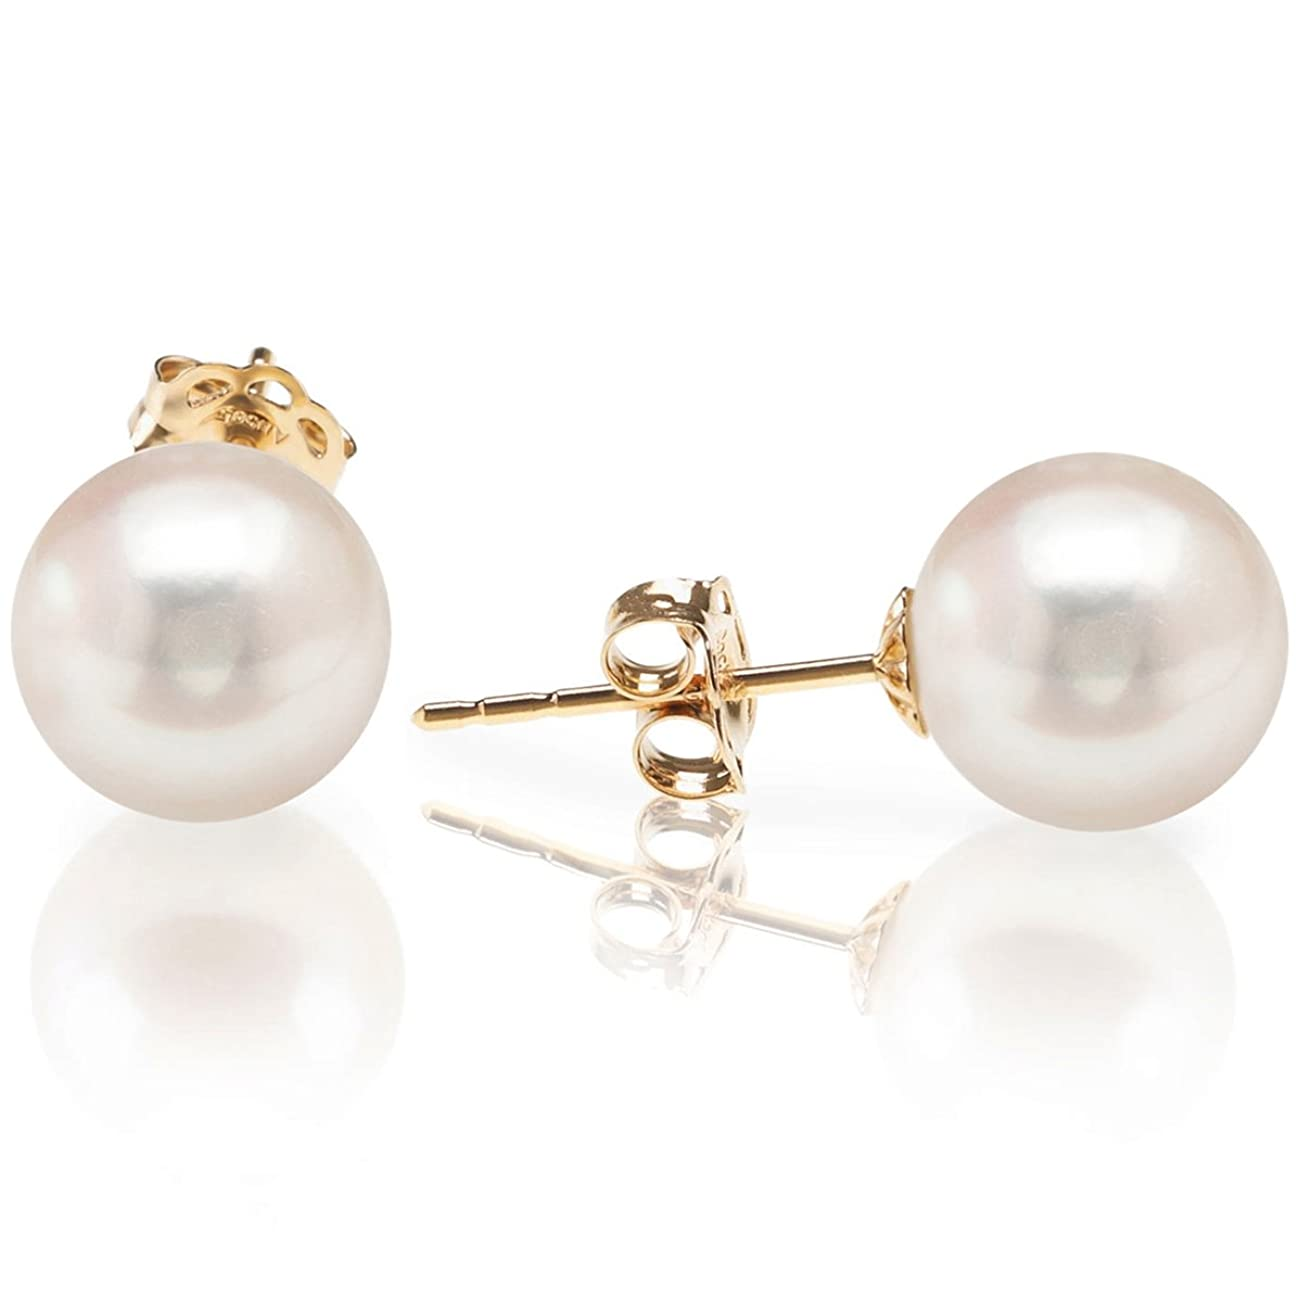 PAVOI 14K Gold AAA+ Handpicked Round Freshwater Cultured White Pearl Earring | Pearl Earrings for Women